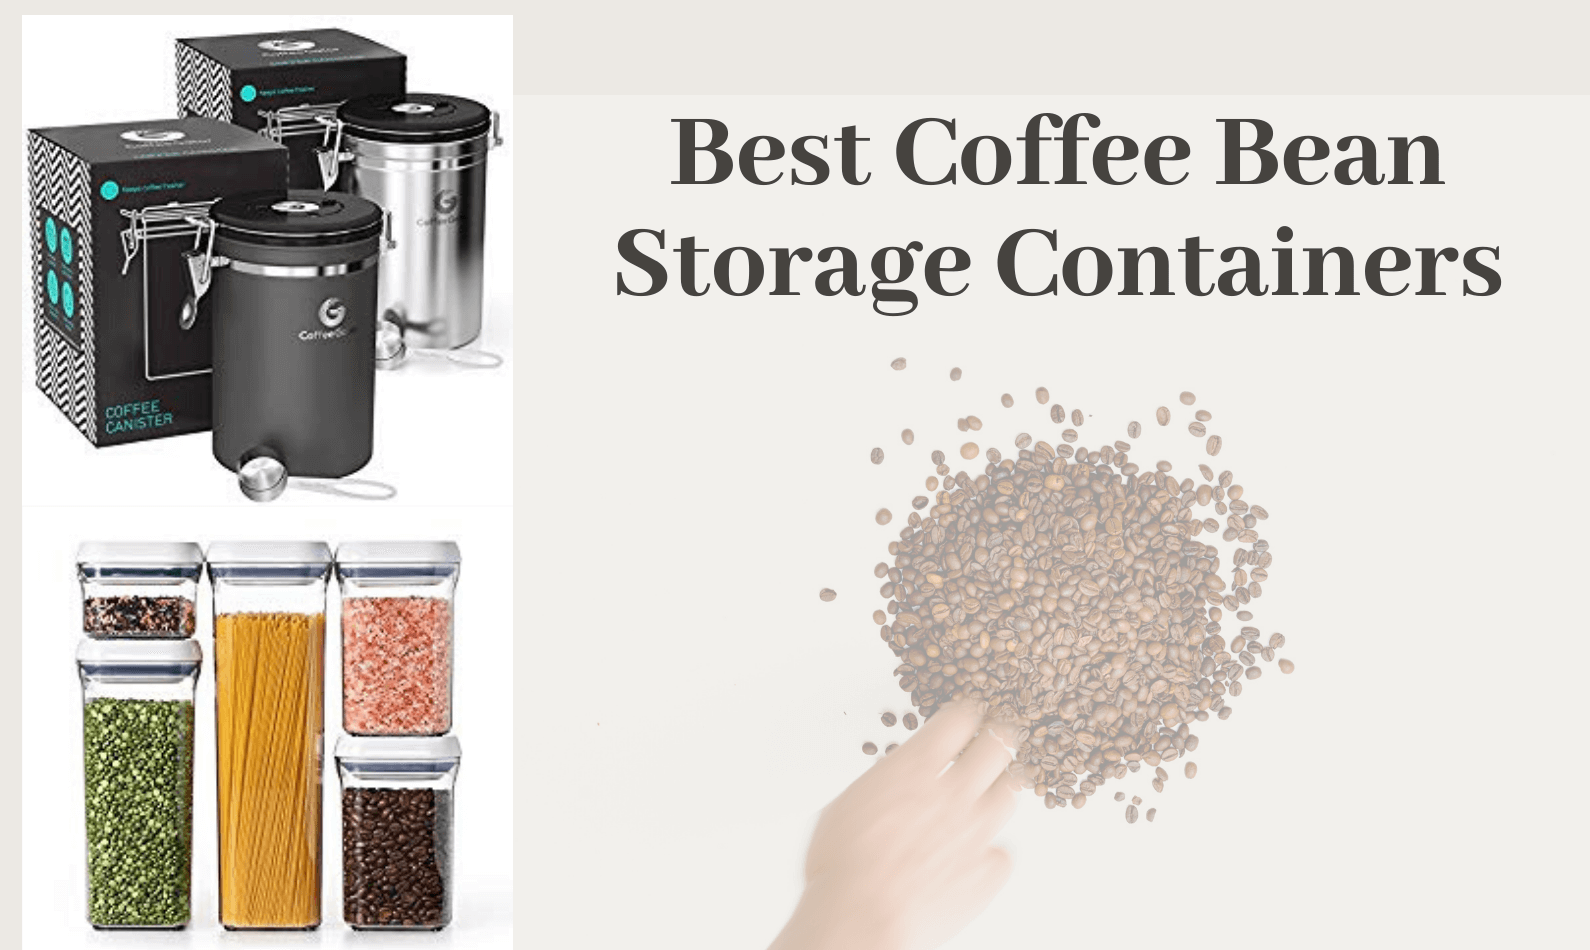 Best Coffee Bean Storage Containers